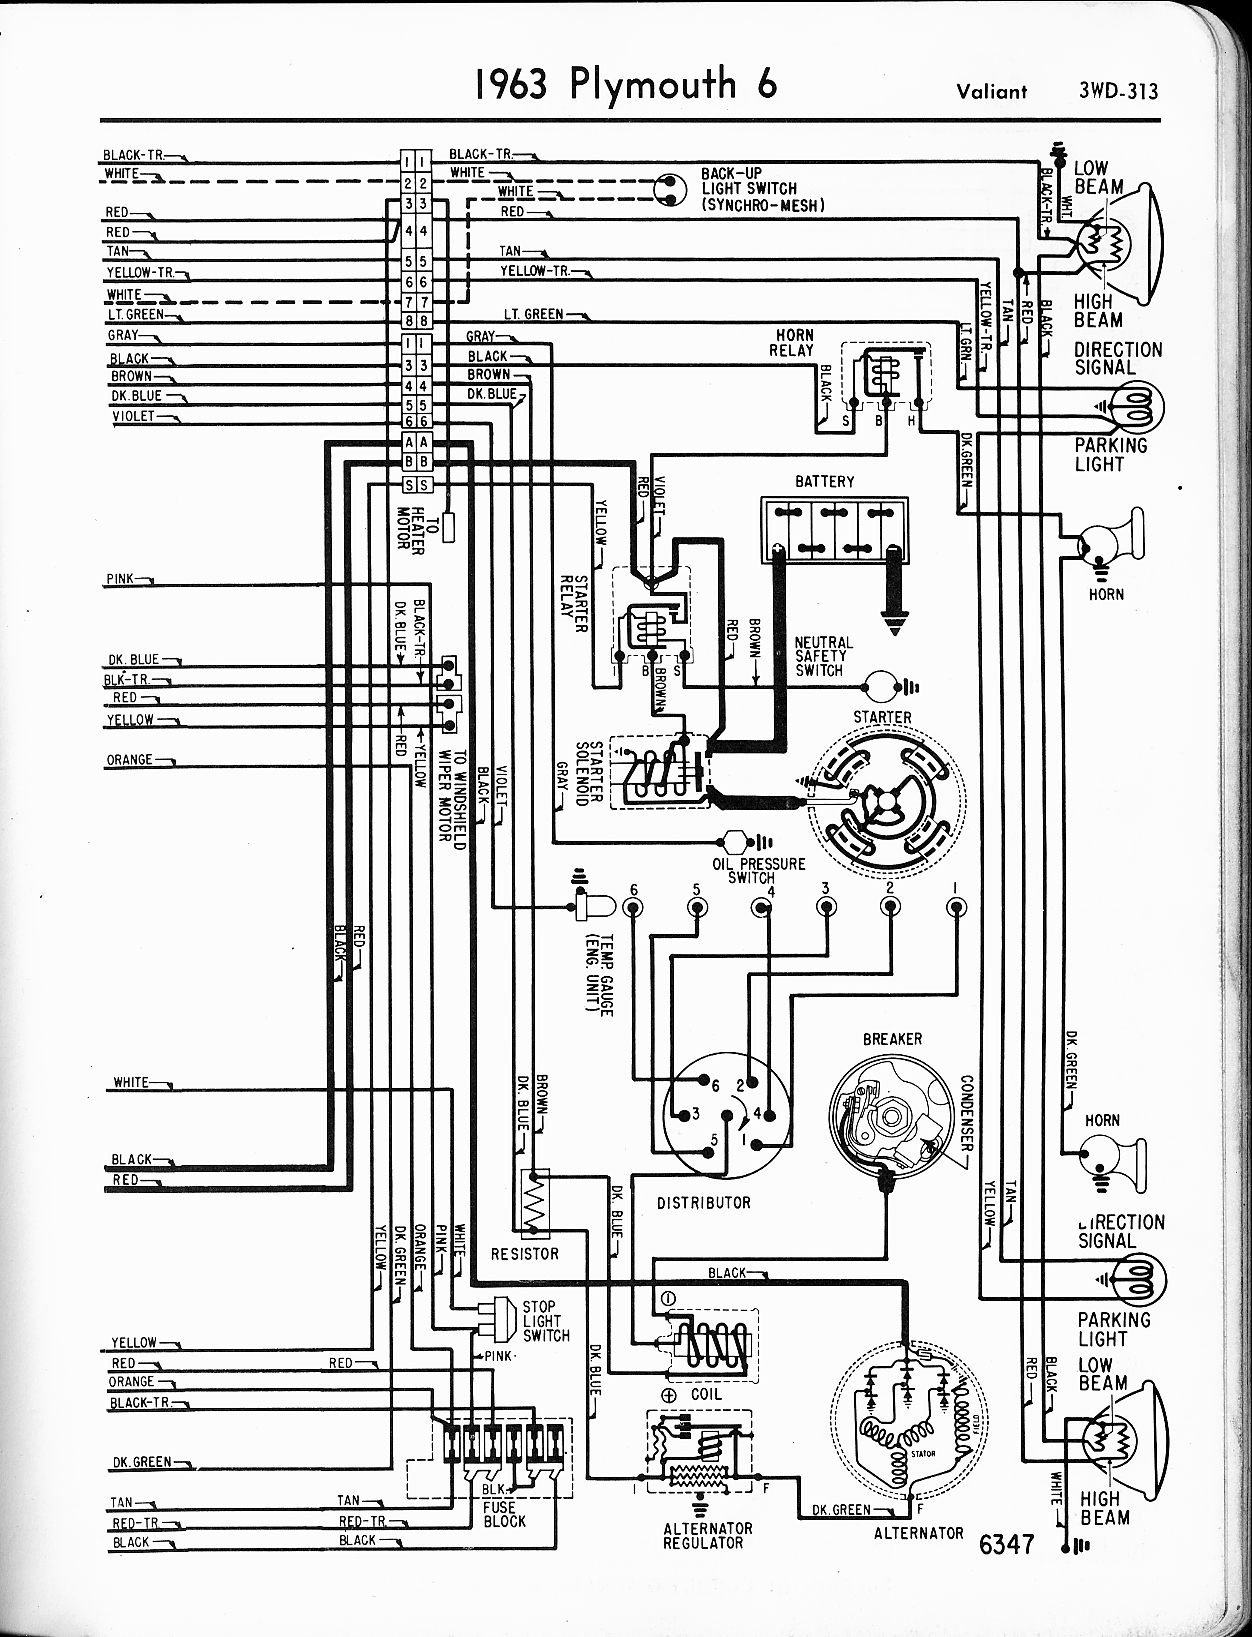 1963 plymouth fury wiring diagram